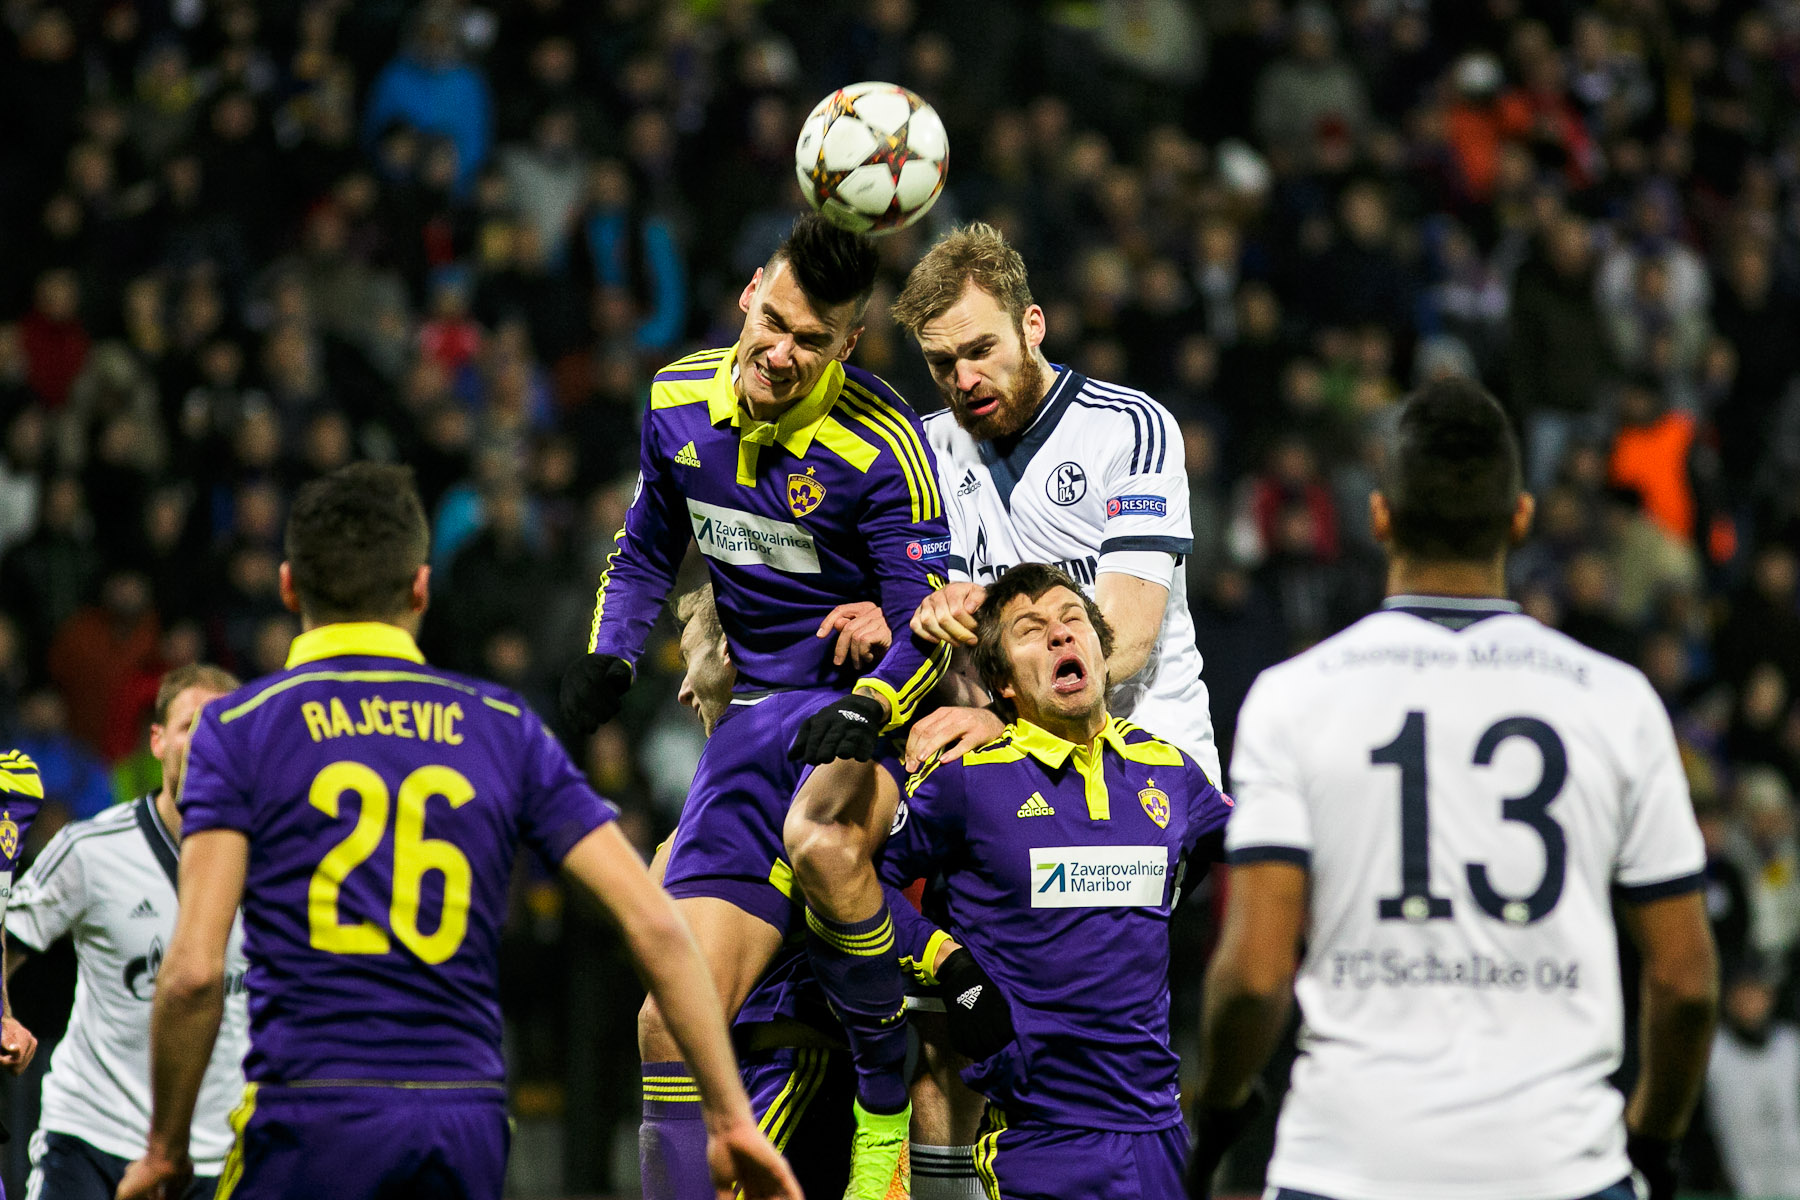 Jan Kirchhoff of FC Schalke 04 and Arghus of NK Maribor jump for the ball during the UEFA Champions League Group G match on December 10 in Maribor, Slovenia.